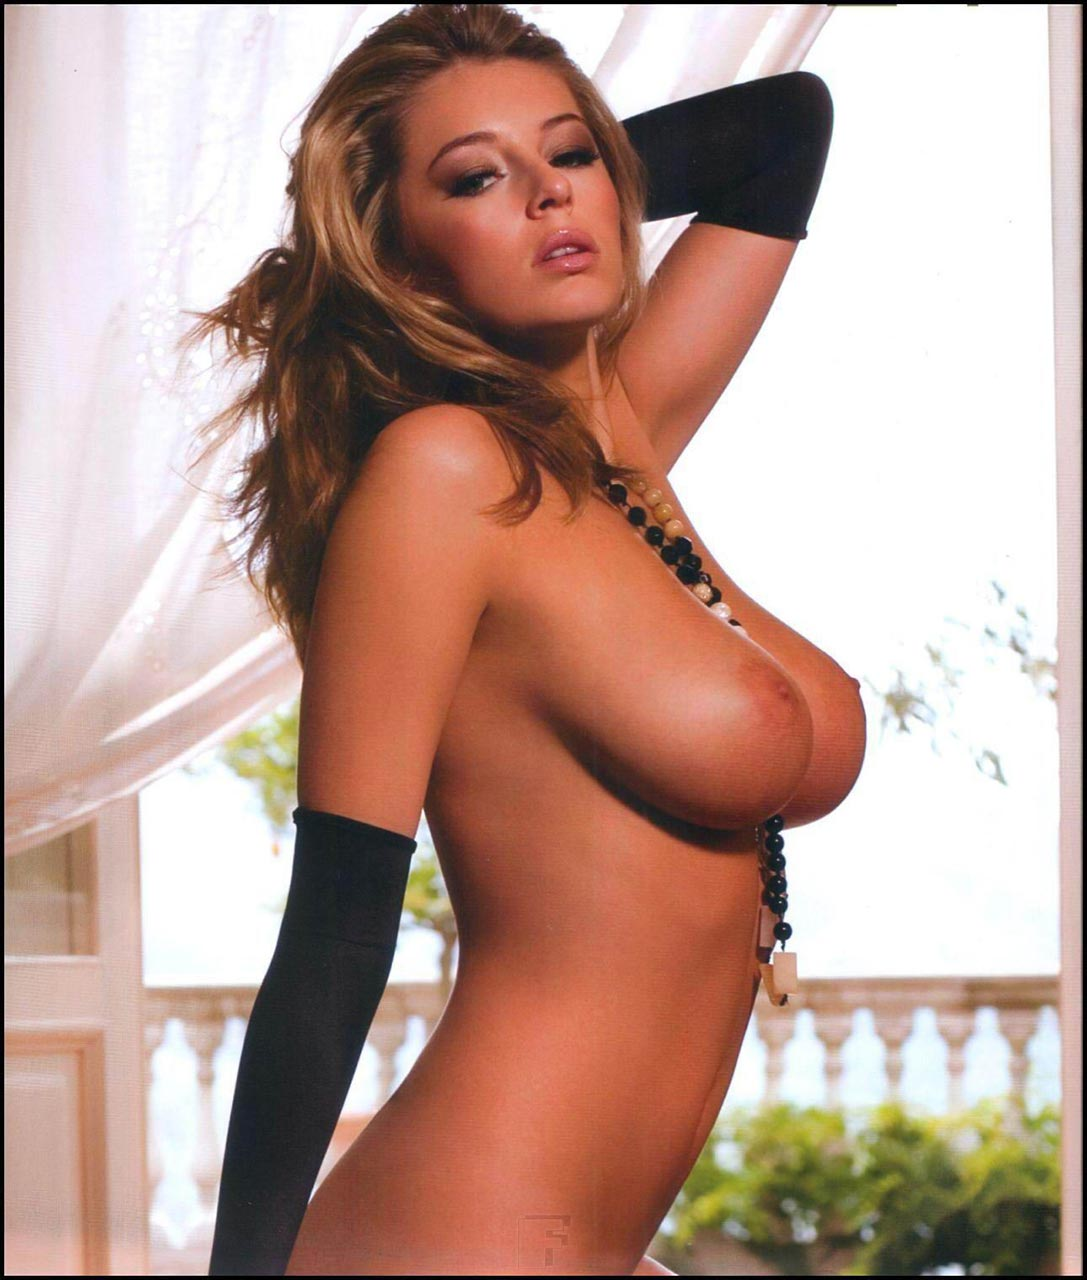 That would keeley hazell nude 2018